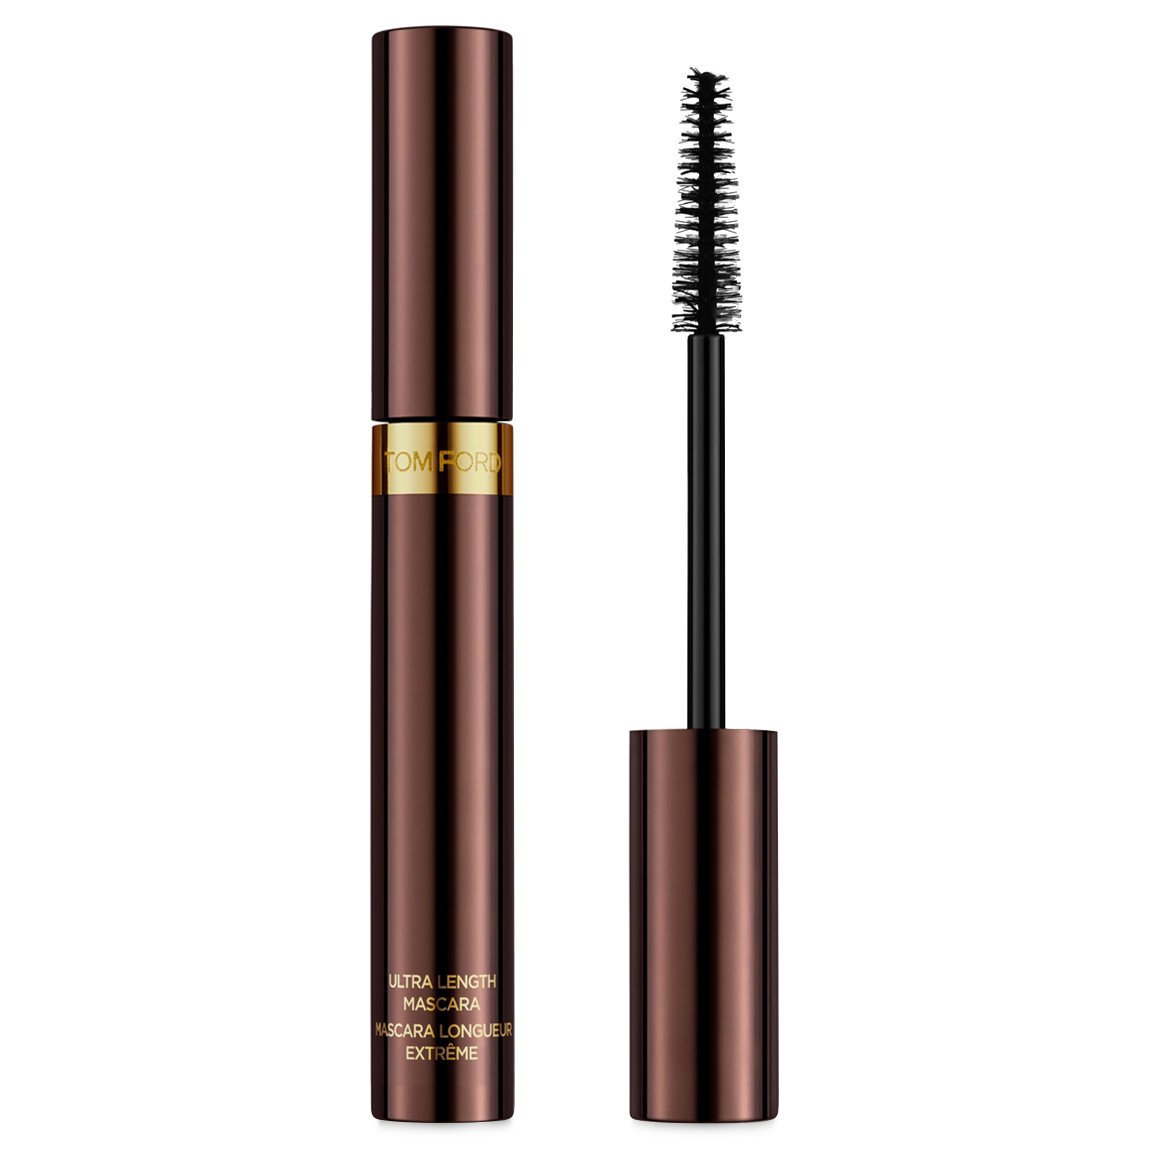 TOM FORD Ultra Length Mascara alternative view 1.